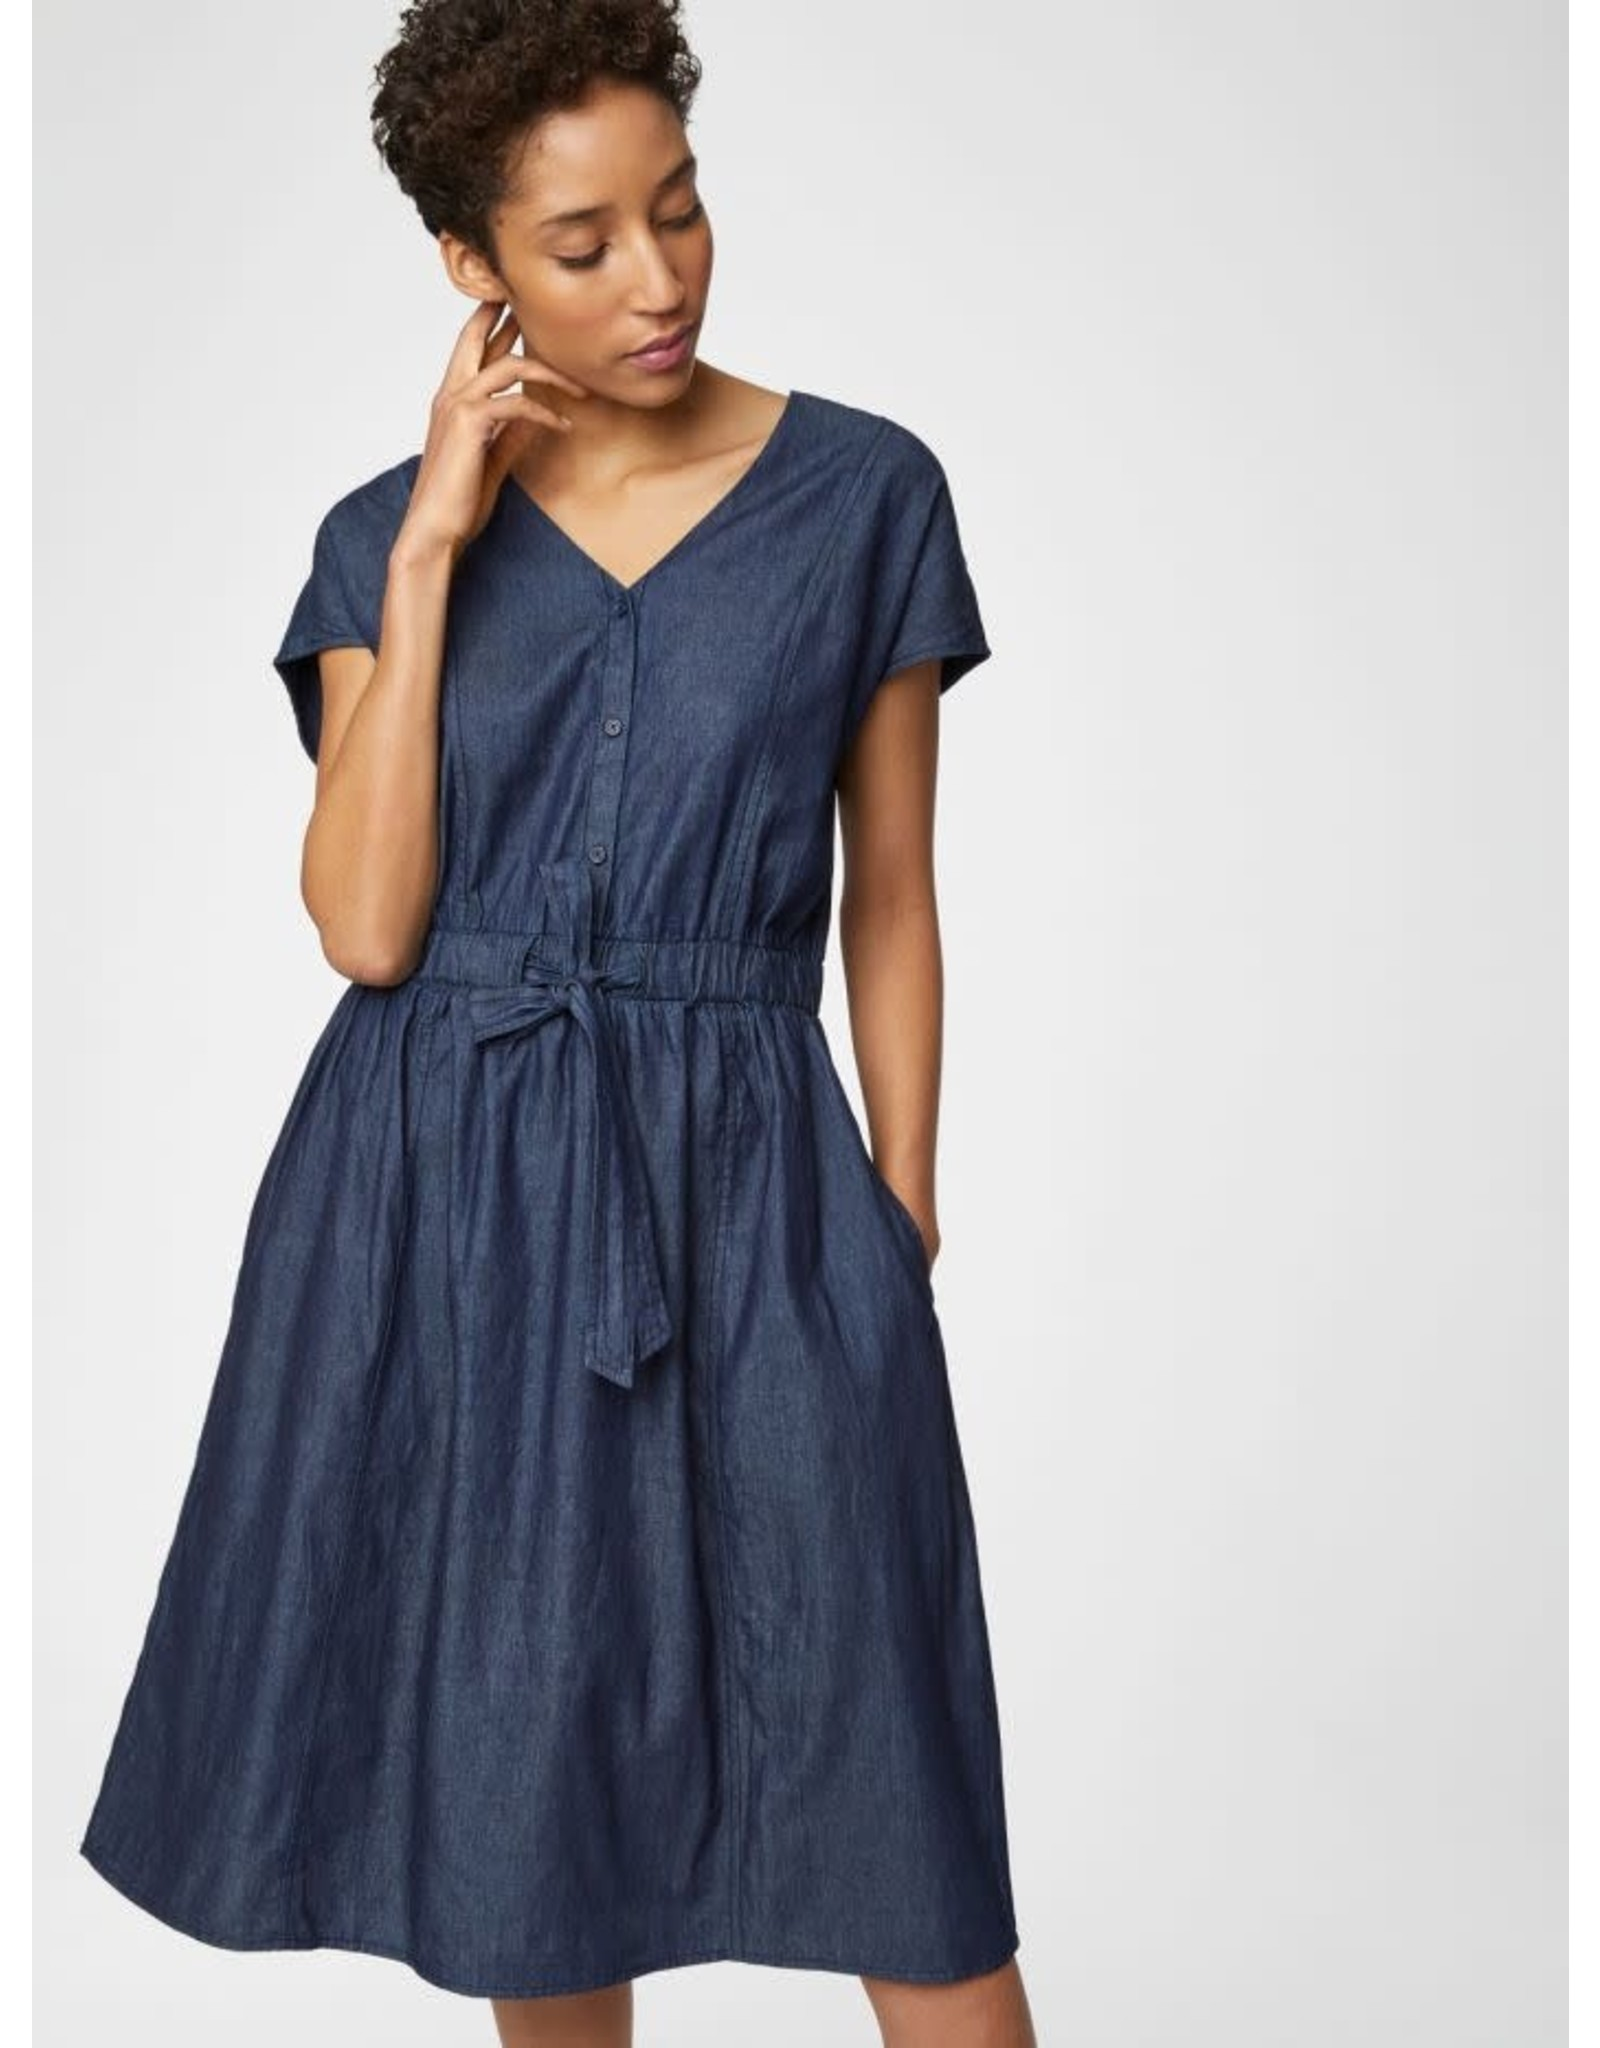 Thought Thought Camila Dress